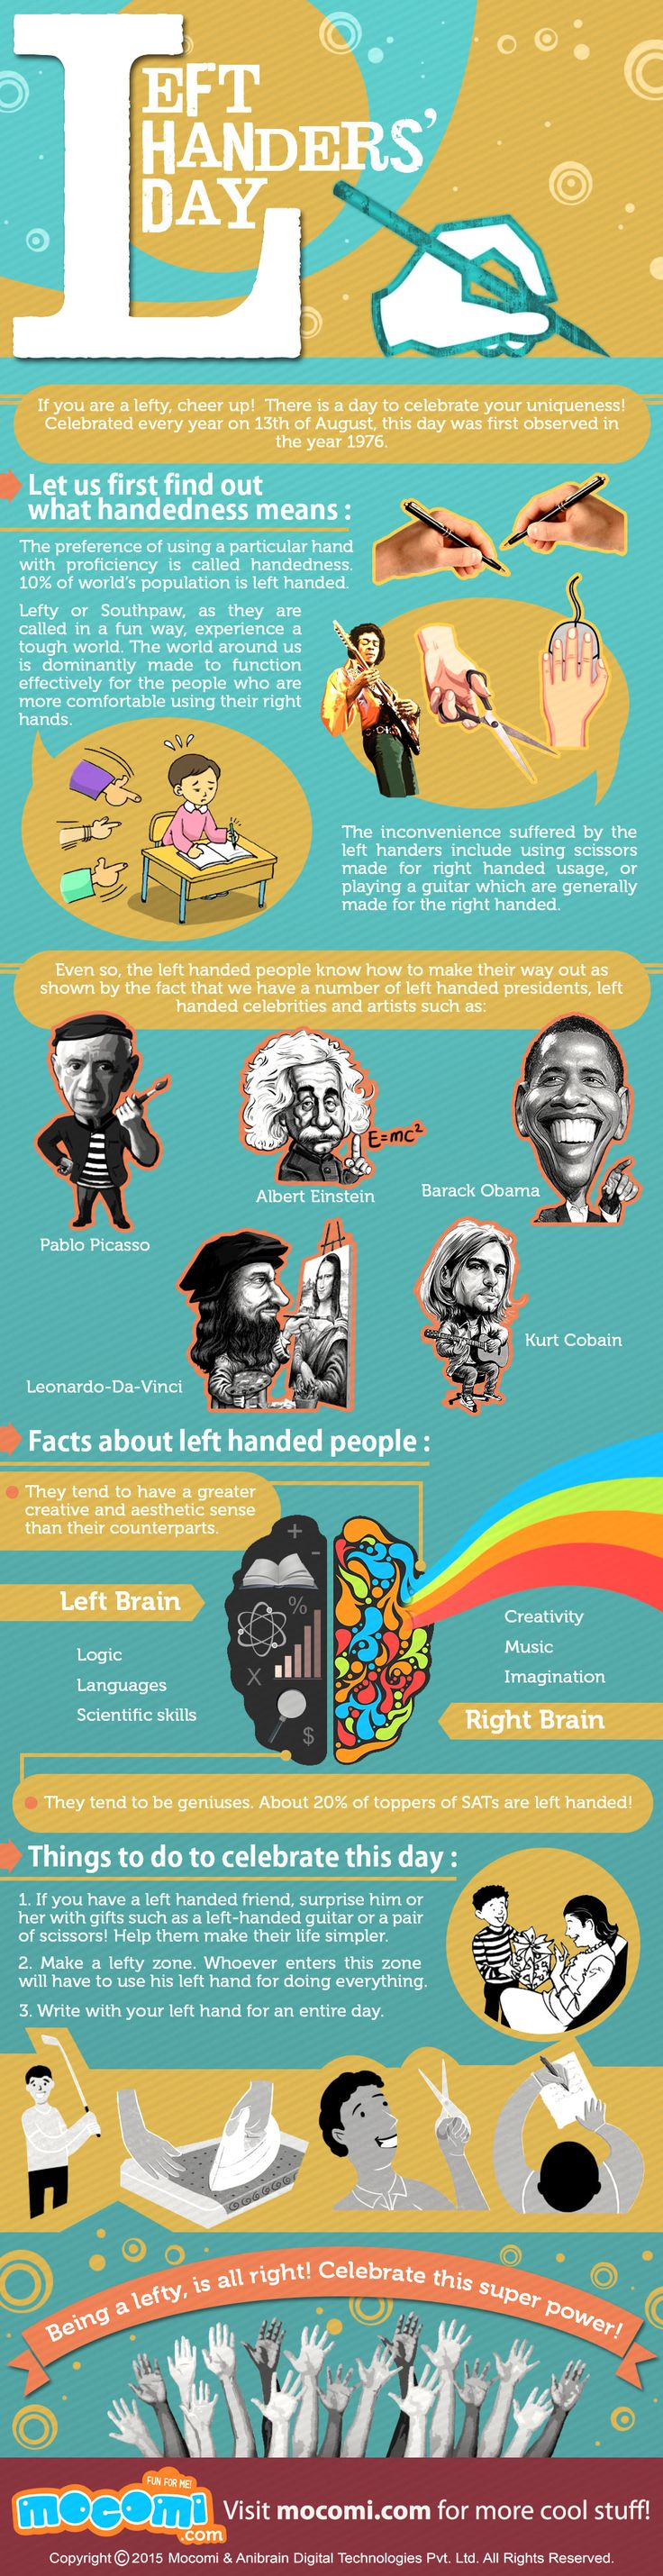 International Left Handers' Day celebrated every year on 13th of August, this day was first observed in the year 1976.